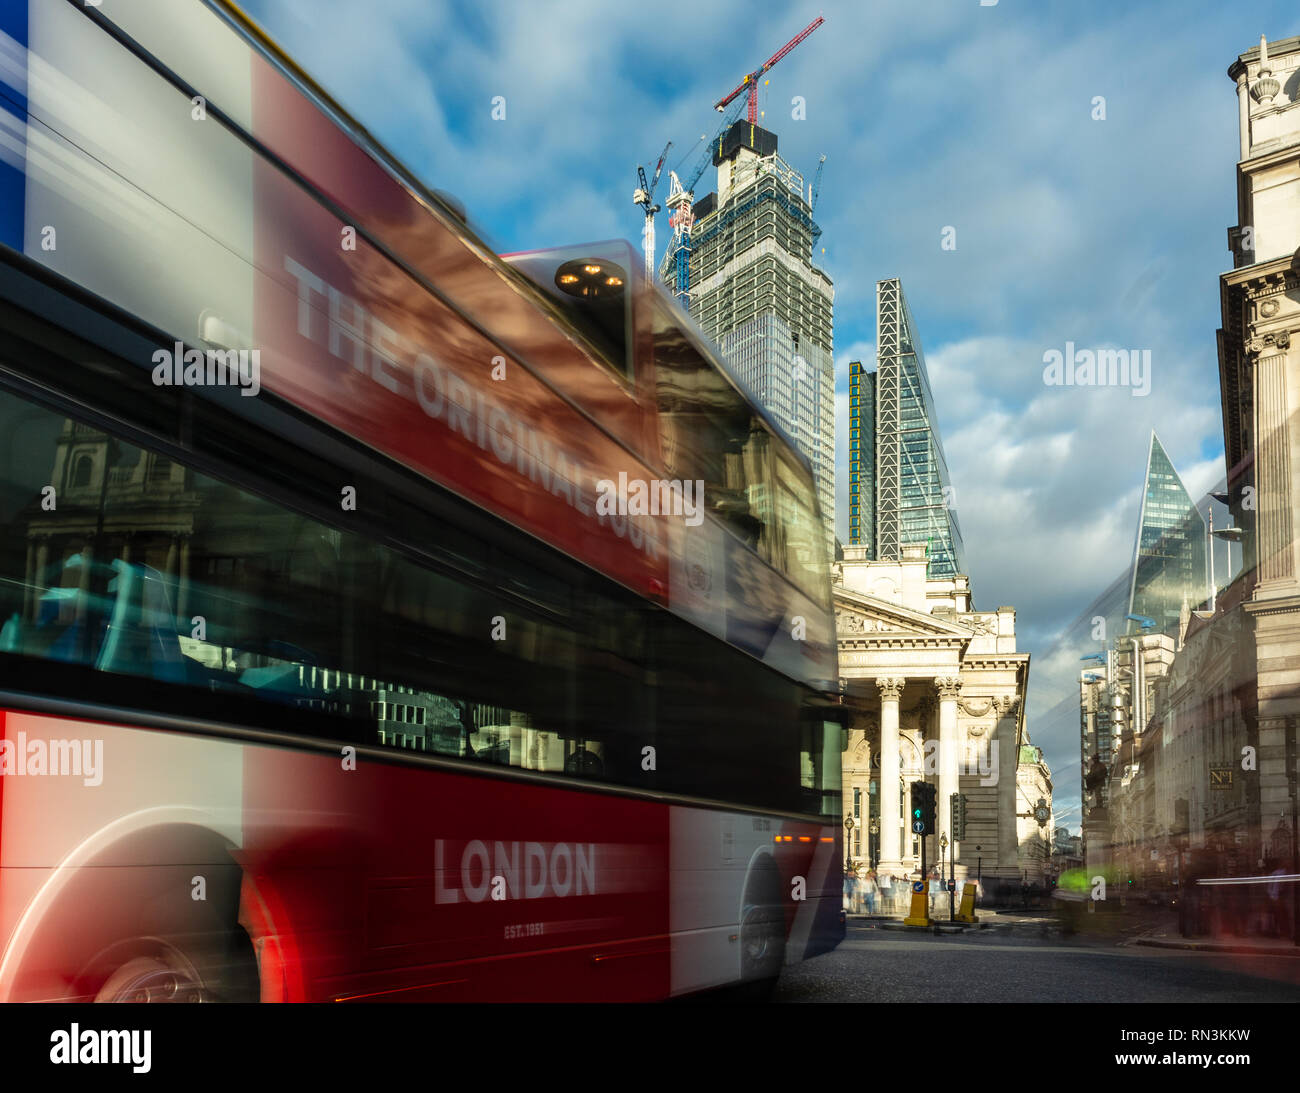 London, England, UK - September 14, 2018: An open top double-decker tour bus passes through the busy Bank junction with the Royal Exchange building an - Stock Image